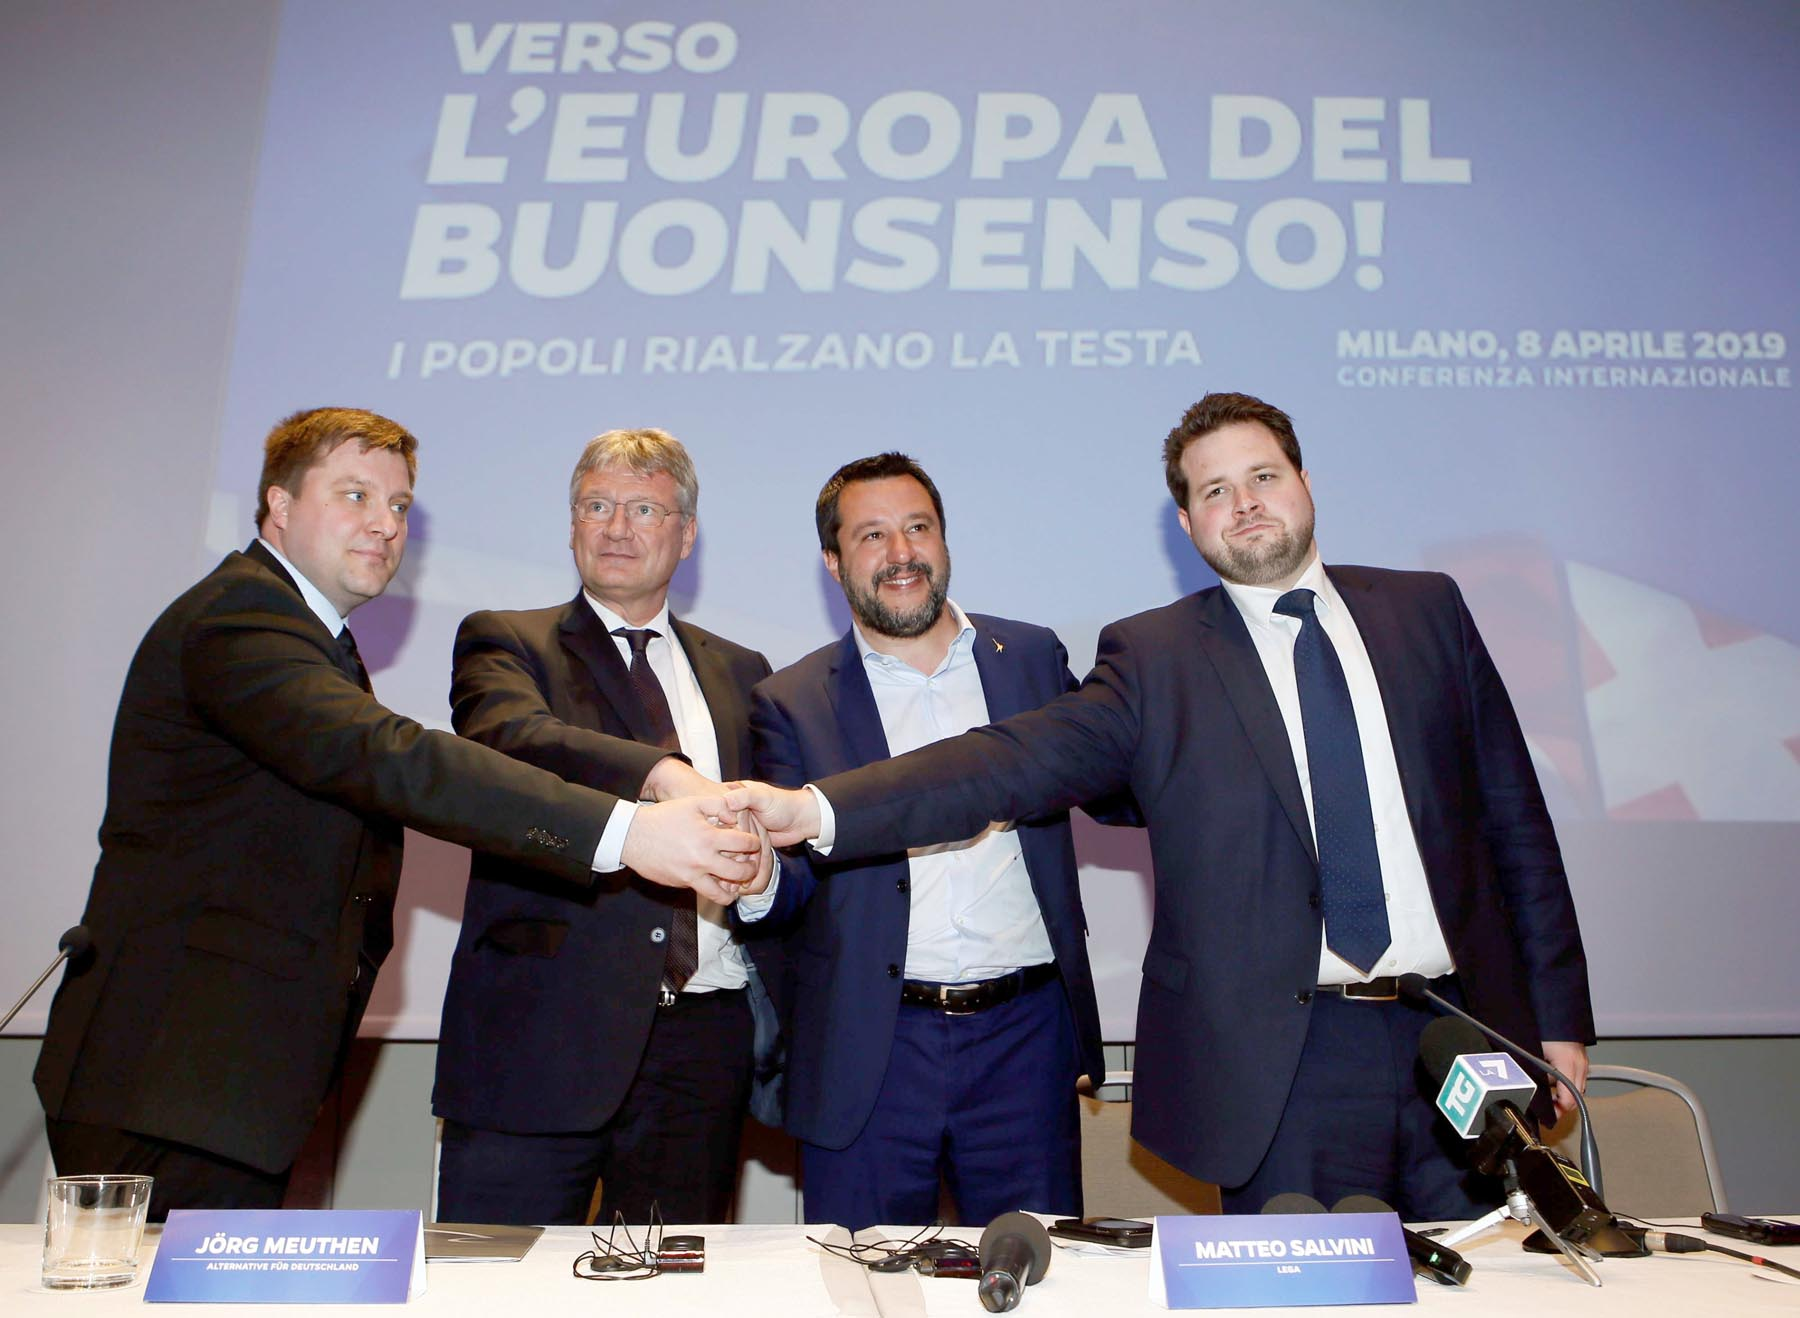 Matteo Salvini (2nd R), leader of the far-right League party, poses with Olli Kotro (L) from the Finnish ECR party, Joerg Meuthen (2nd L) from the German EFDD party and Anders  Vistisen from the Danish ECR party, as he launches the start of his campaign for the European  elections, in Milan, April 8. (Reuters)